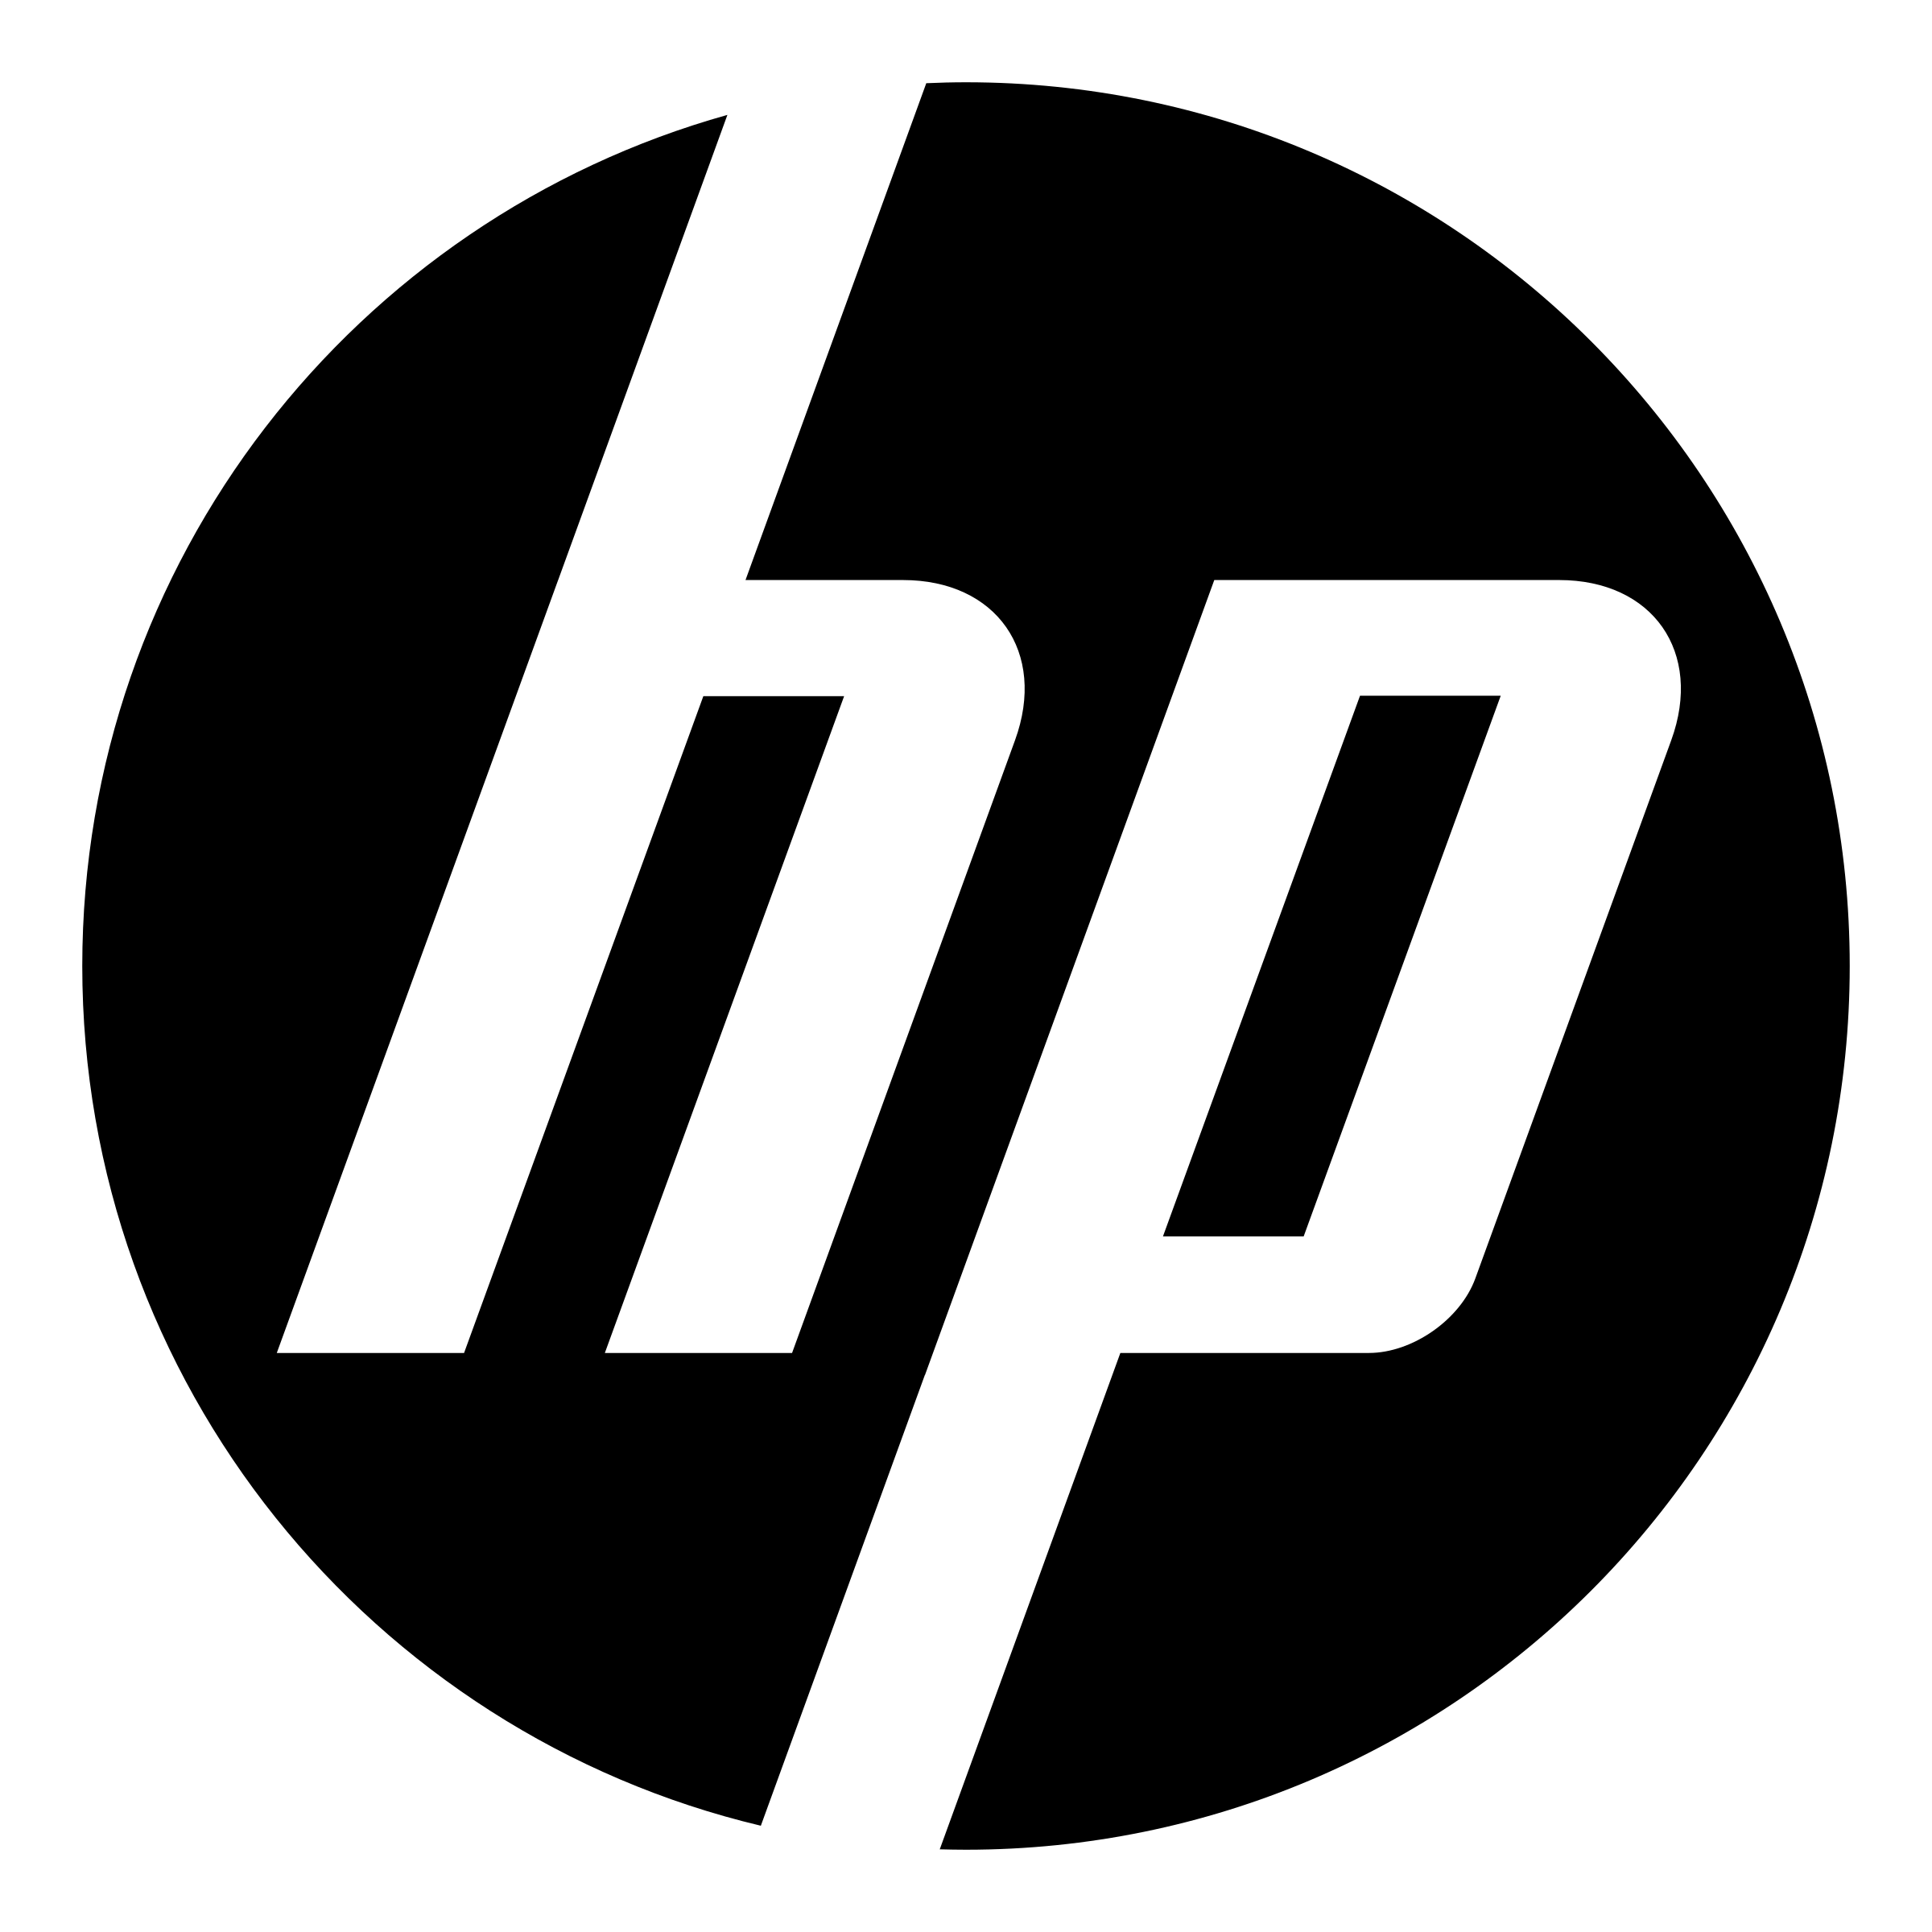 hp_logo_transparent